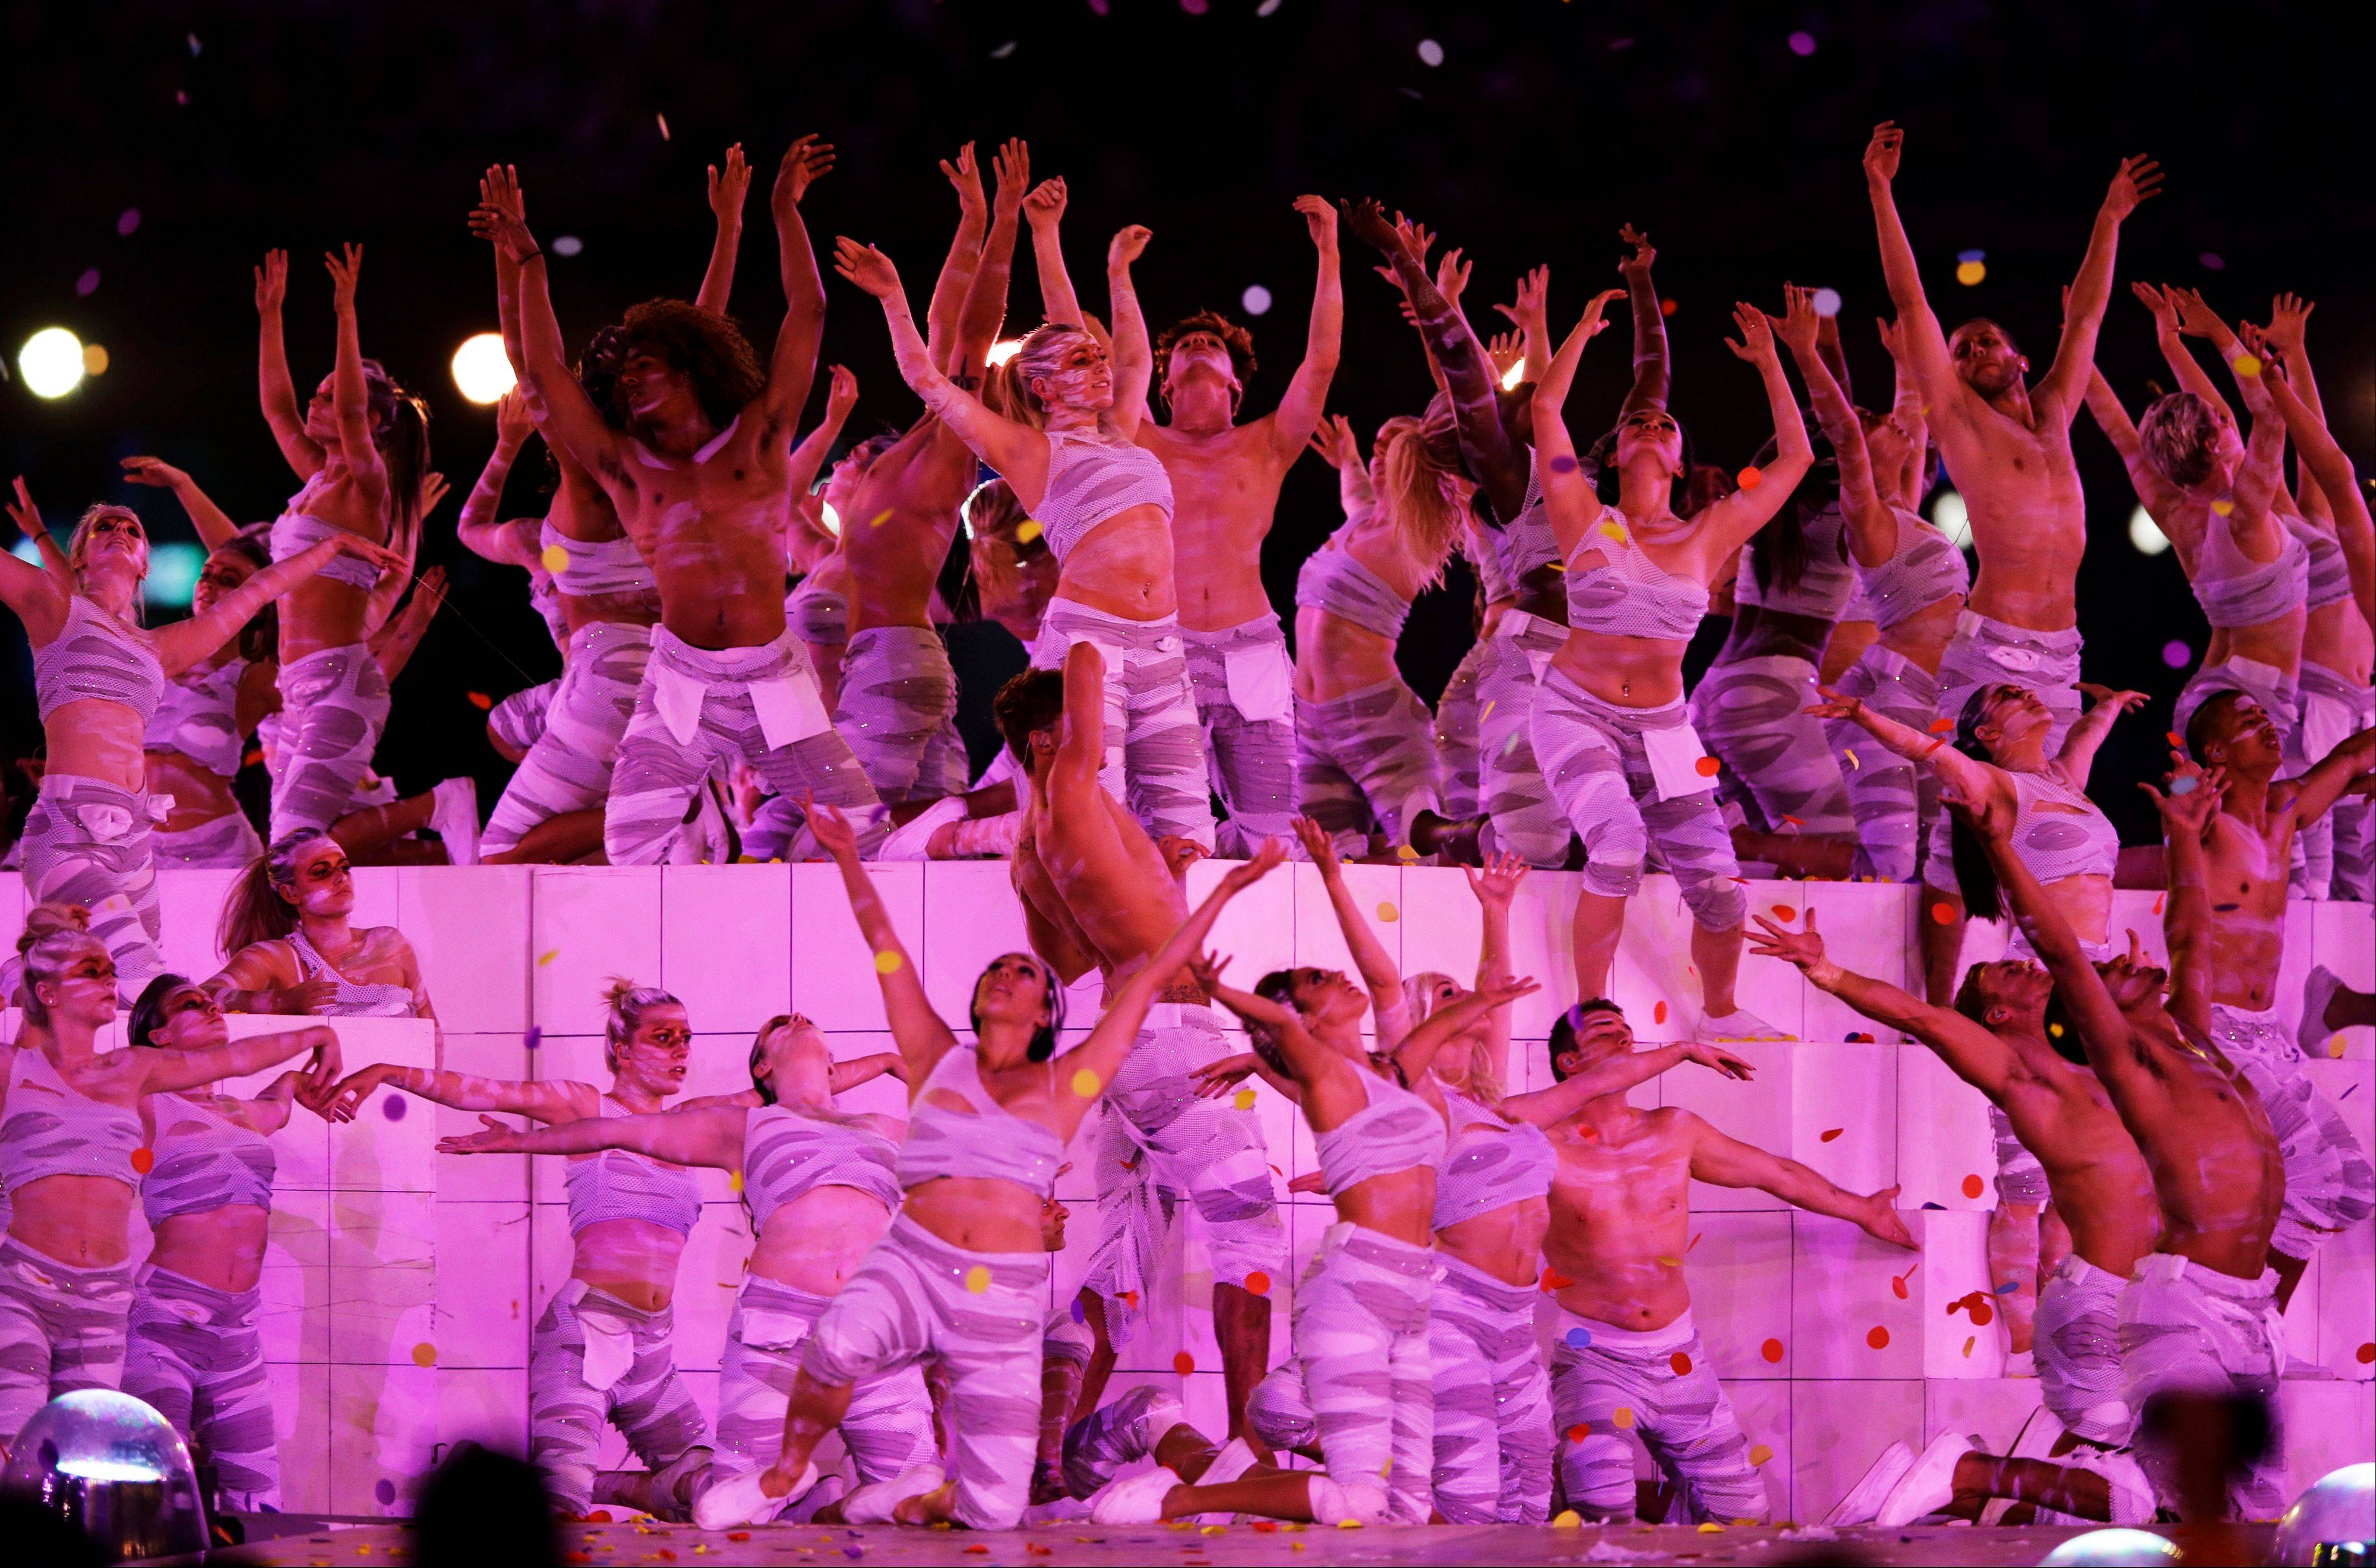 Artists perform during the Closing Ceremony at the 2012 Summer Olympics.